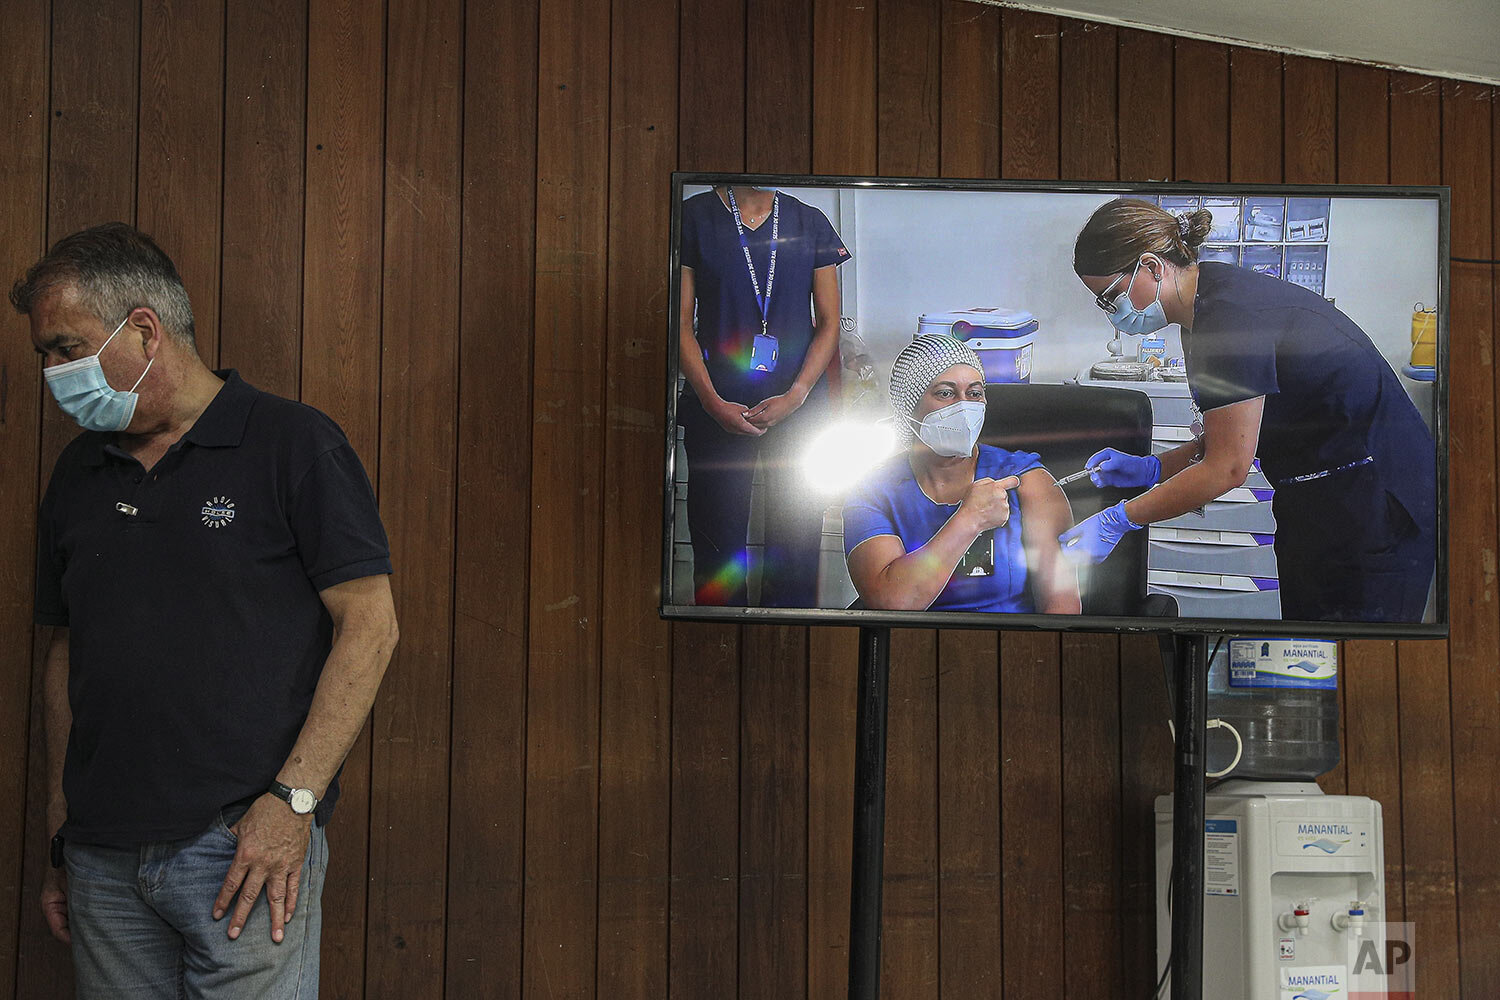 A monitor shows a live video image of nurse Zulema Riquelme getting the first shot of the COVID-19 vaccine at the Metropolitan Hospital in Santiago, Chile, Thursday, Dec. 24, 2020, after the first batches of Pfizer vaccines arrived. (AP Photo/Esteban Felix)